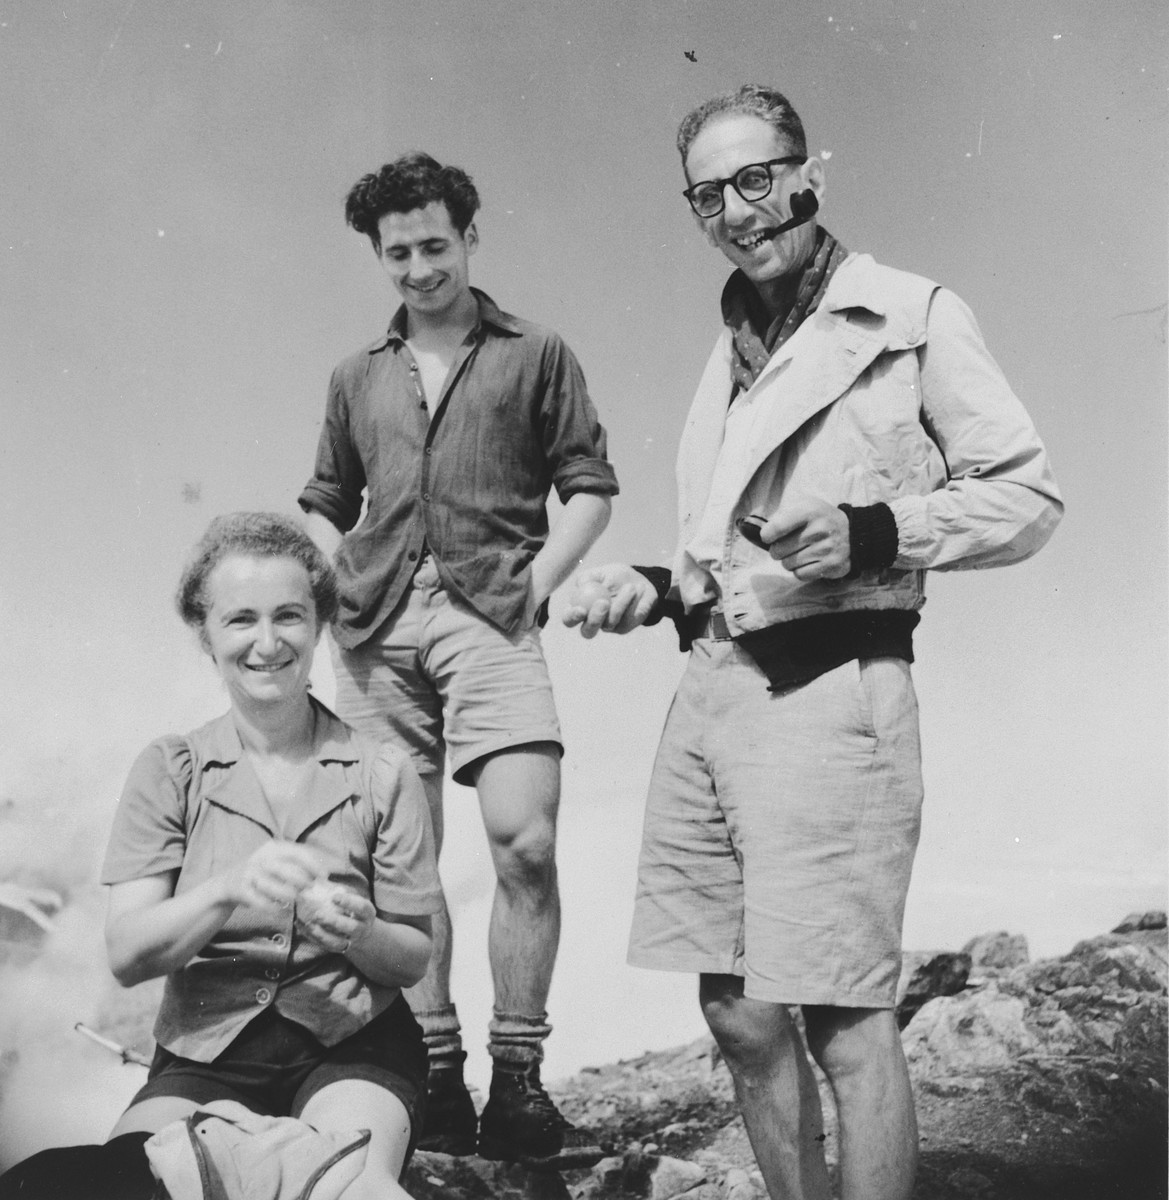 Three Jewish refugees go mountain climbing in the Swiss hills.  Amont those pictured are the photographer, Walter Limot (far right) and his wife Ines.